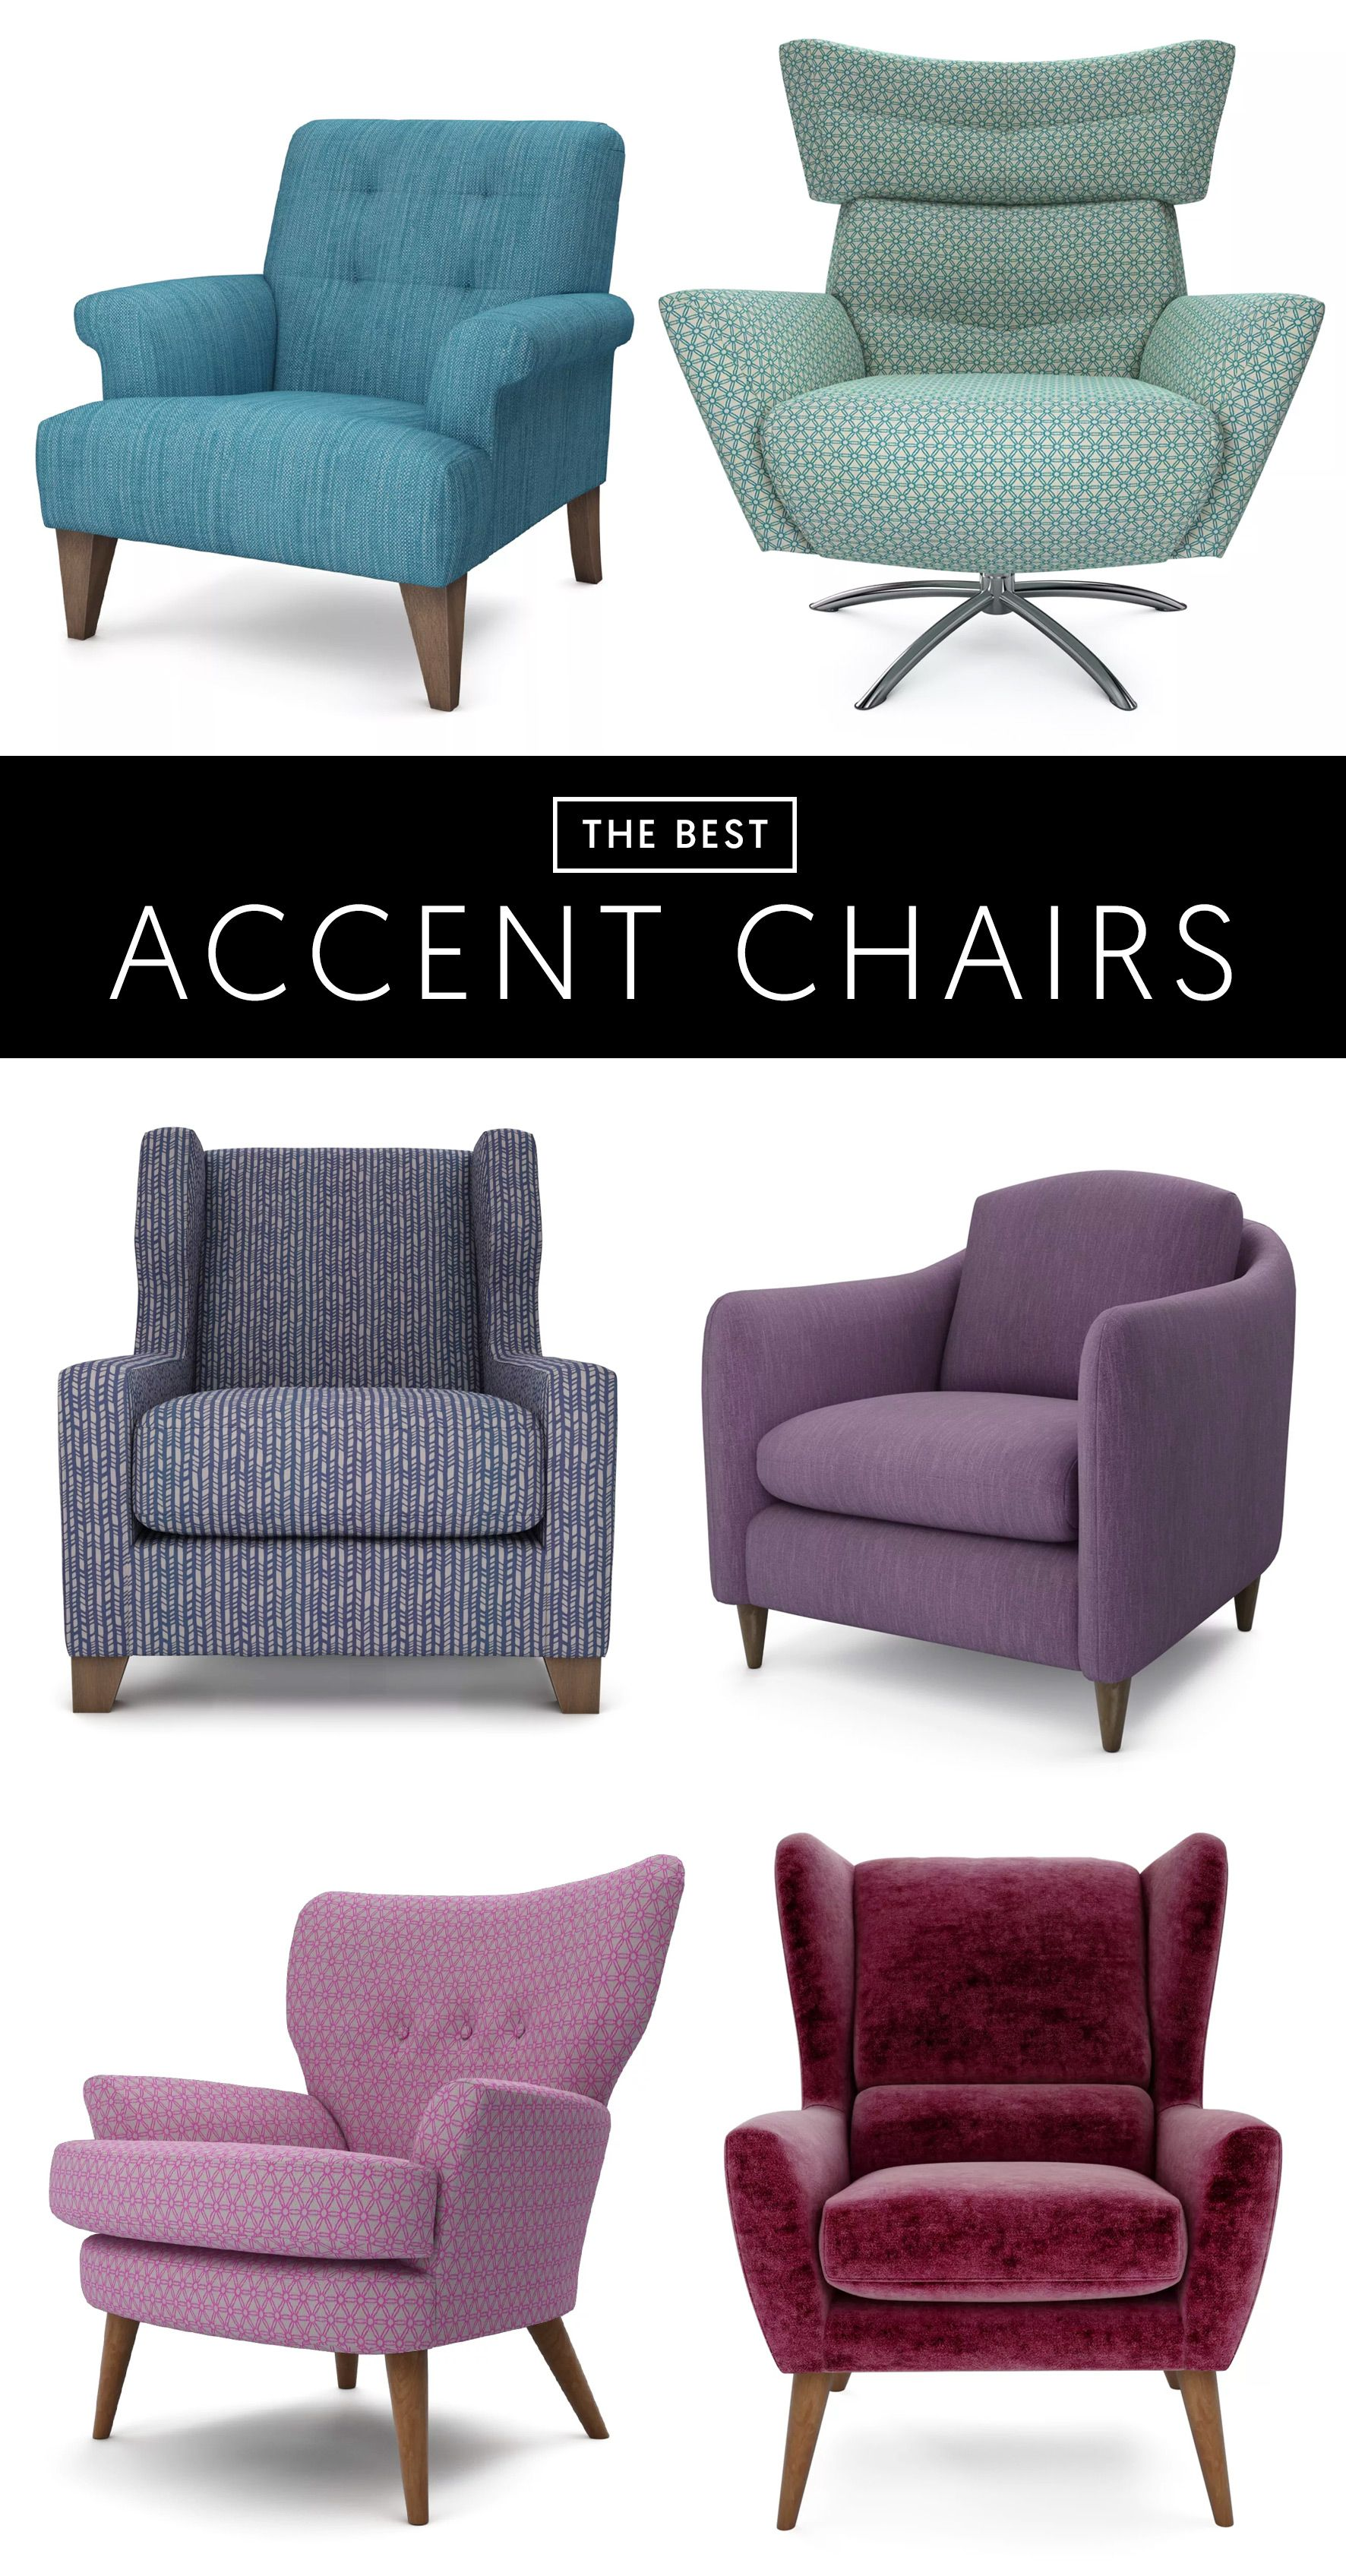 The Best 6 Accent Chairs Make A Statement With A Stylish Accent Chair From The Lounge Co Choose A Fabric That Mat Stylish Accent Chairs Chair Stylish Chairs